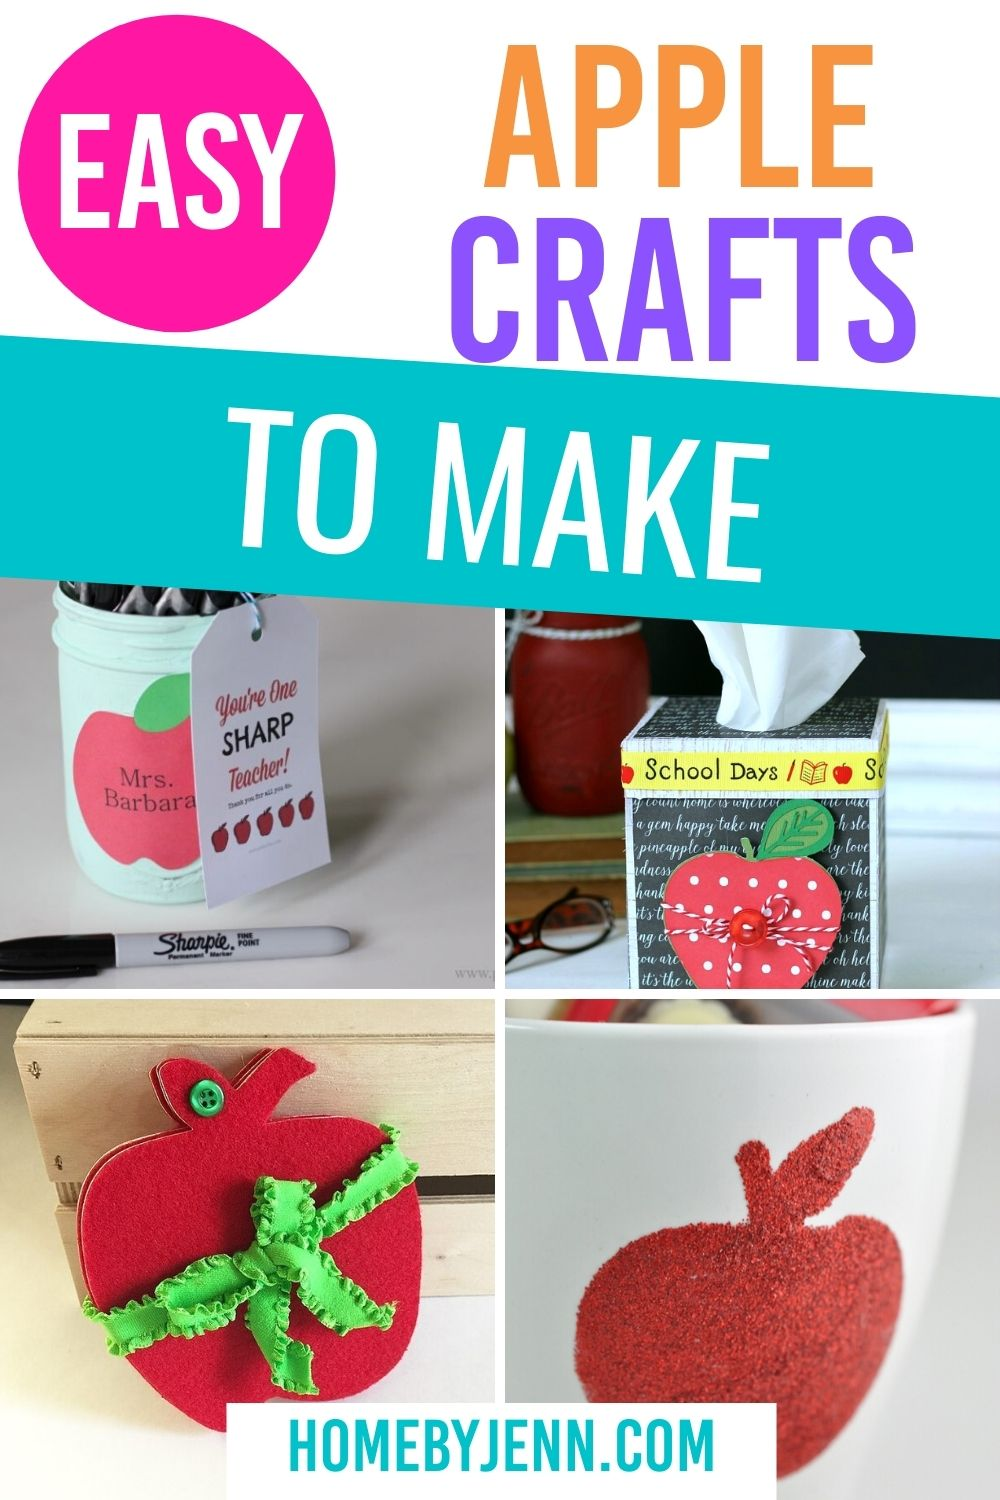 Easy apple crafts for fall. From apple kid crafts to home decor and even apple gift ideas. This list is all you need for fun apple crafts for the whole family. #apple #crafts #diy #project #kids #toddlers #giftideas #backtoschool via @homebyjenn